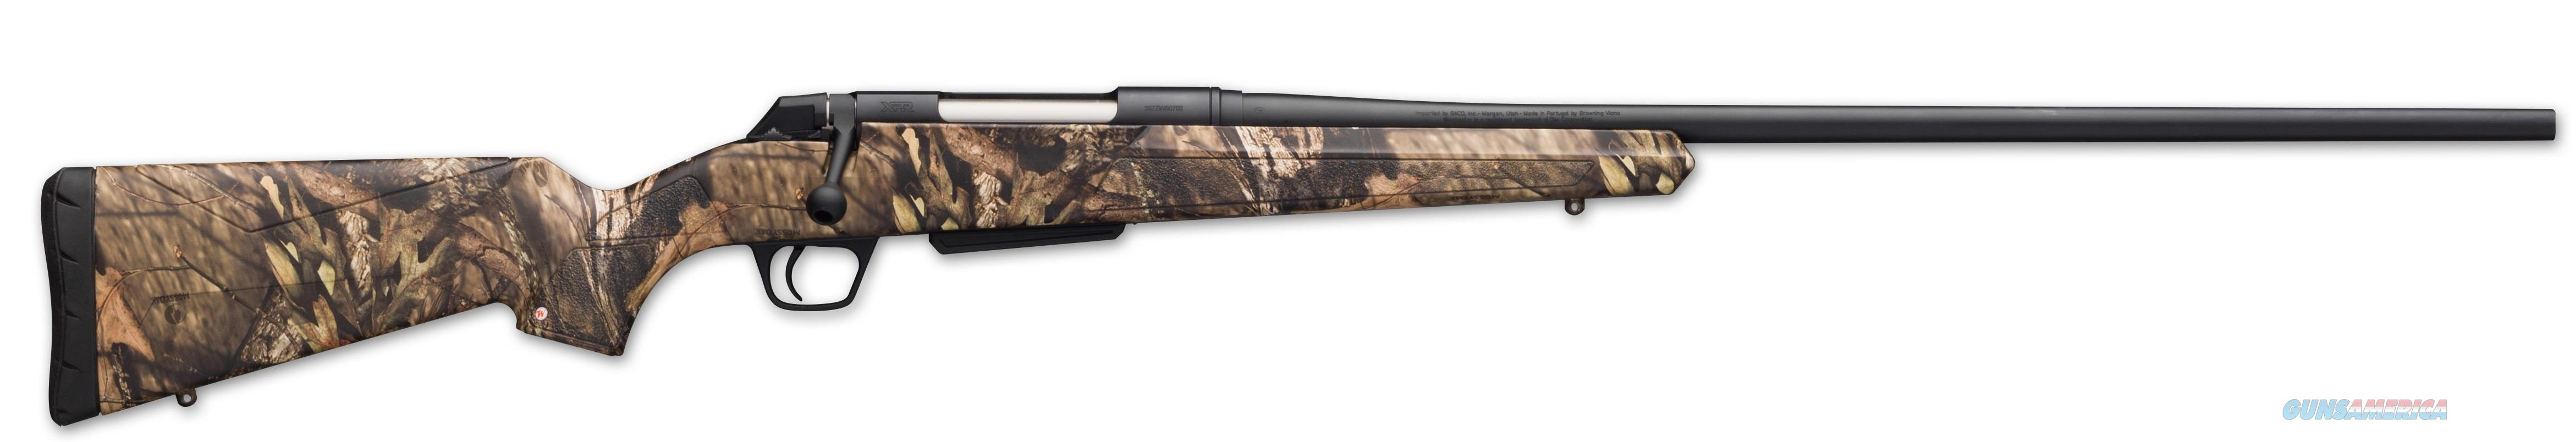 WINCHESTER XPR HUNTER MOSSY OAK BREAK-UP COUNTRY 7MM REM MAG ONLY $399.00 AFTER FACTORY REBATE NEW IN BOX  Guns > Rifles > Winchester Rifles - Modern Bolt/Auto/Single > Other Bolt Action